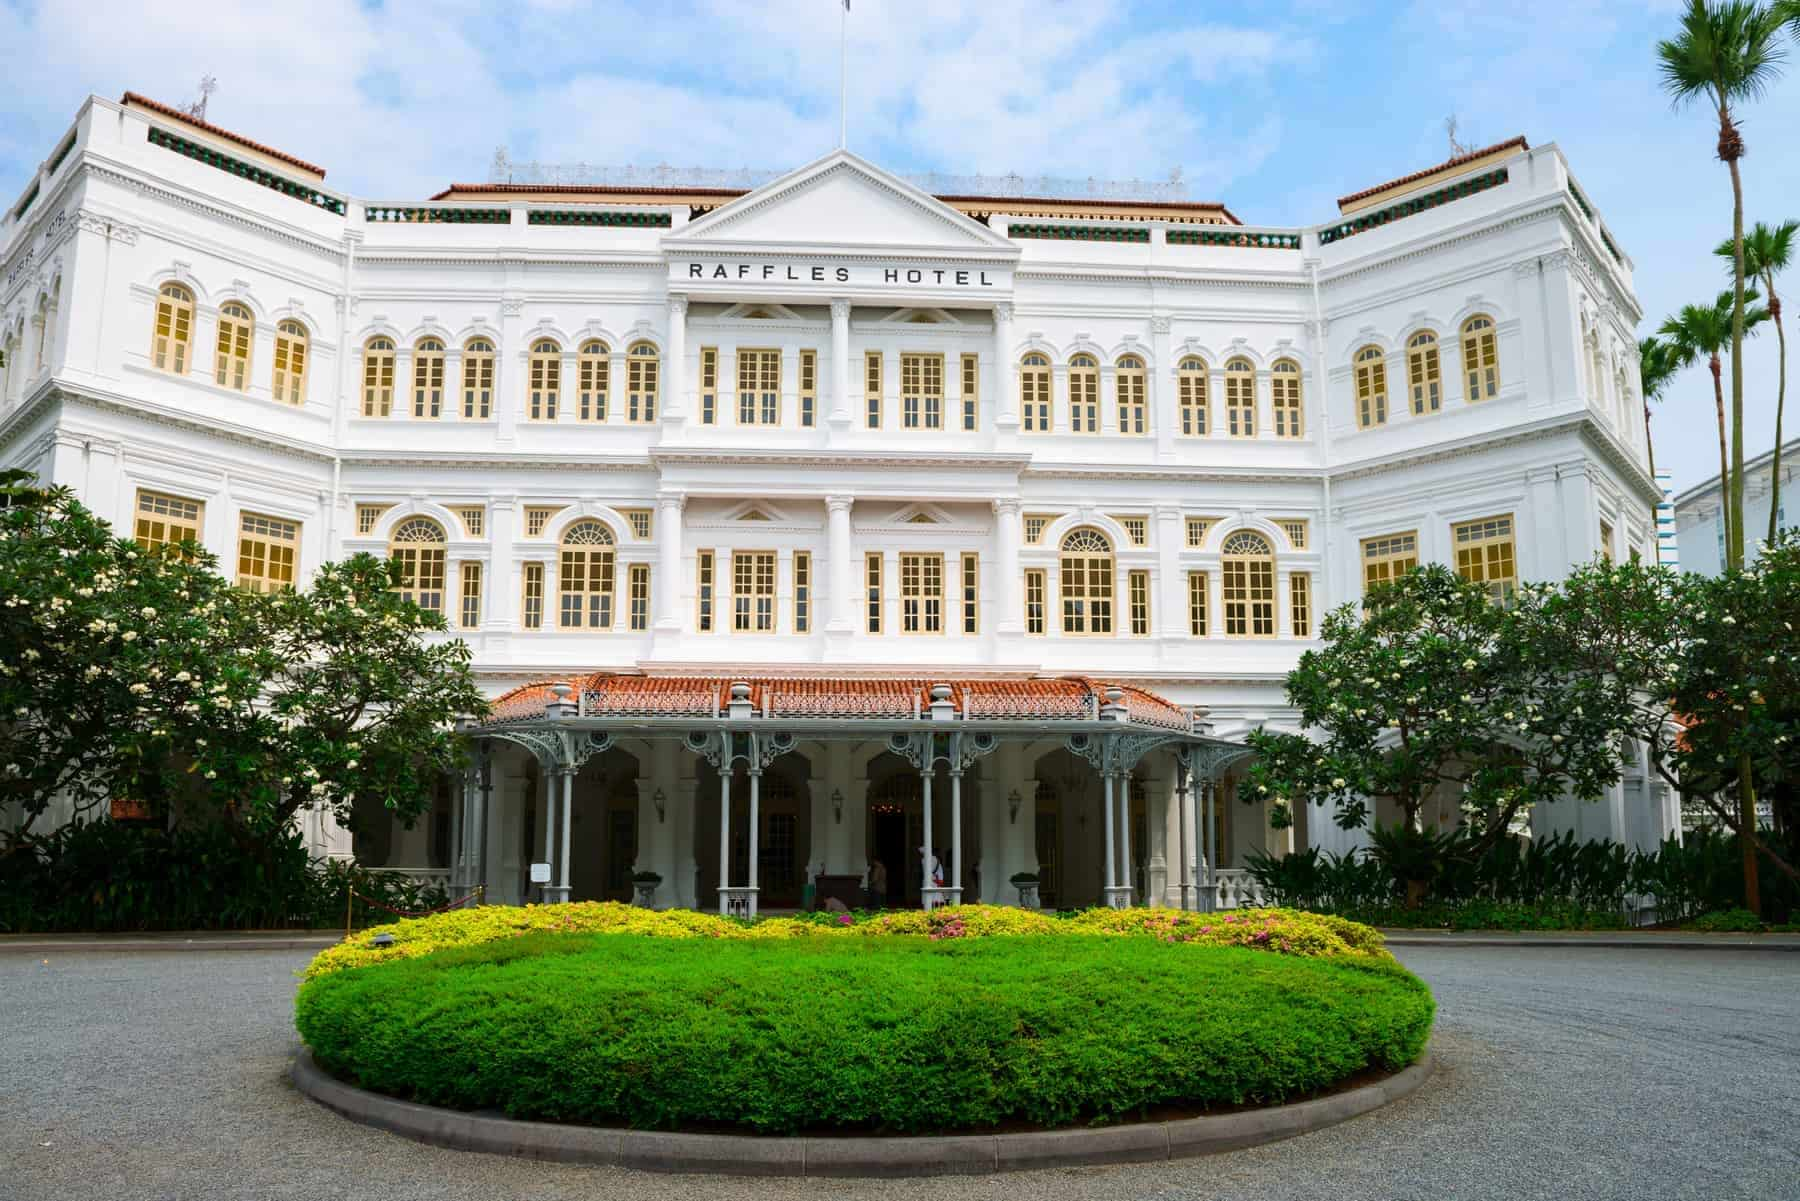 The Raffles Hotel in Singapore, main entrance. Now totally renovated